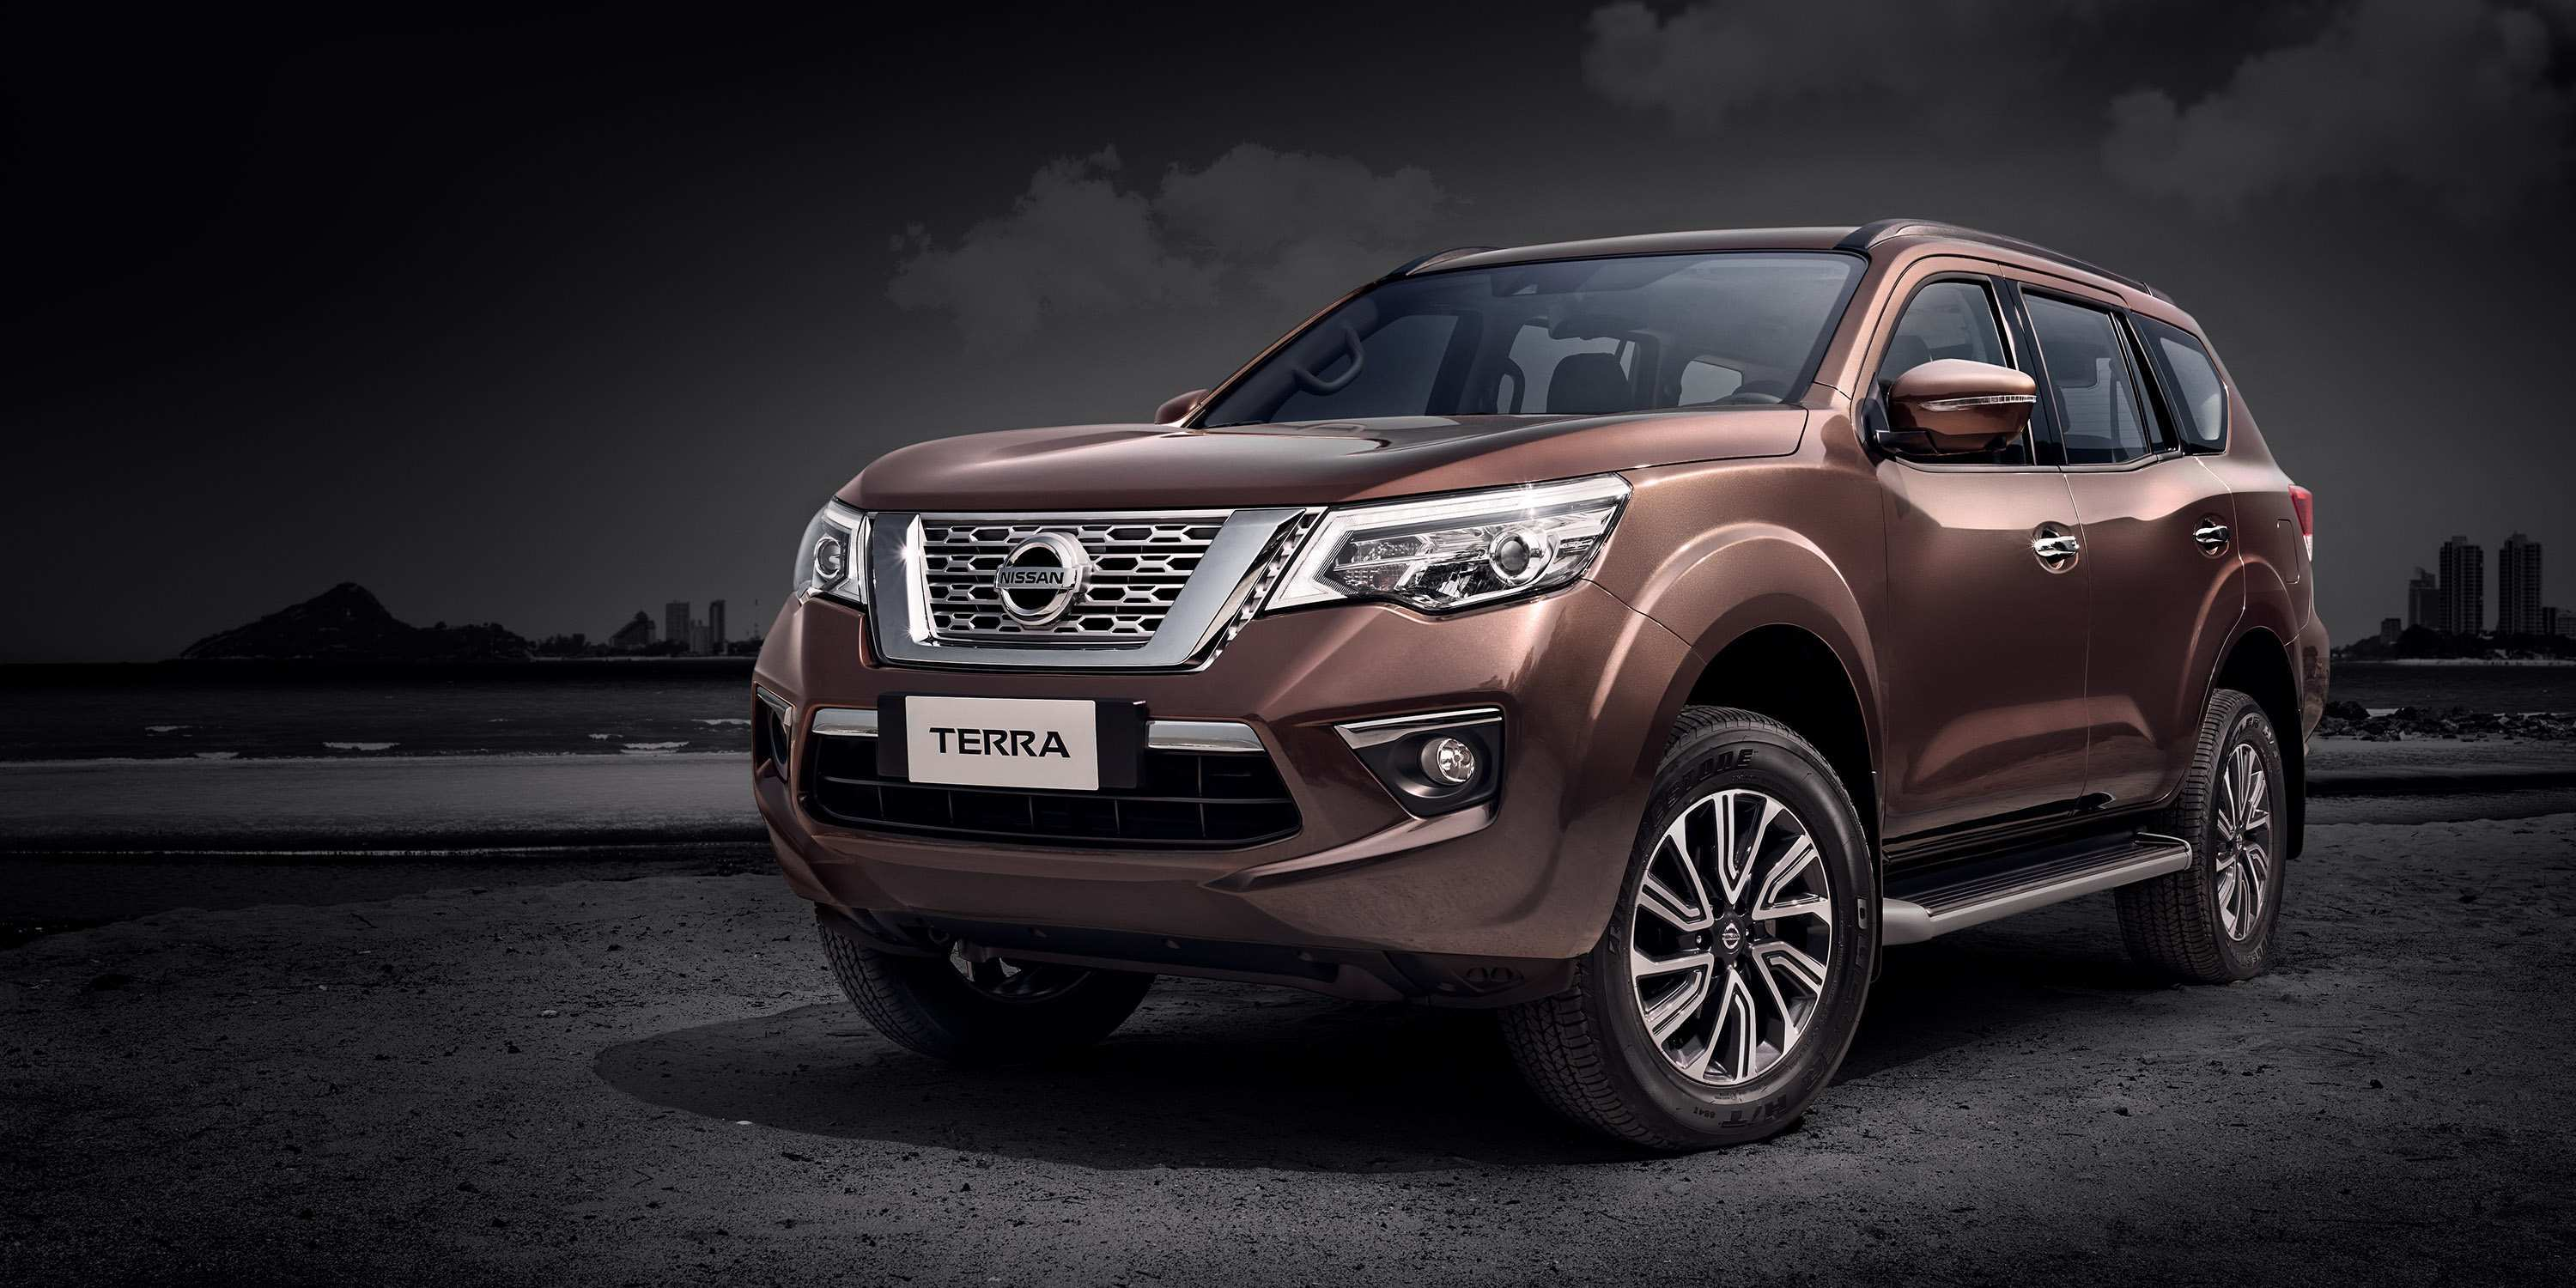 59 The Nissan Terra 2019 Philippines Configurations